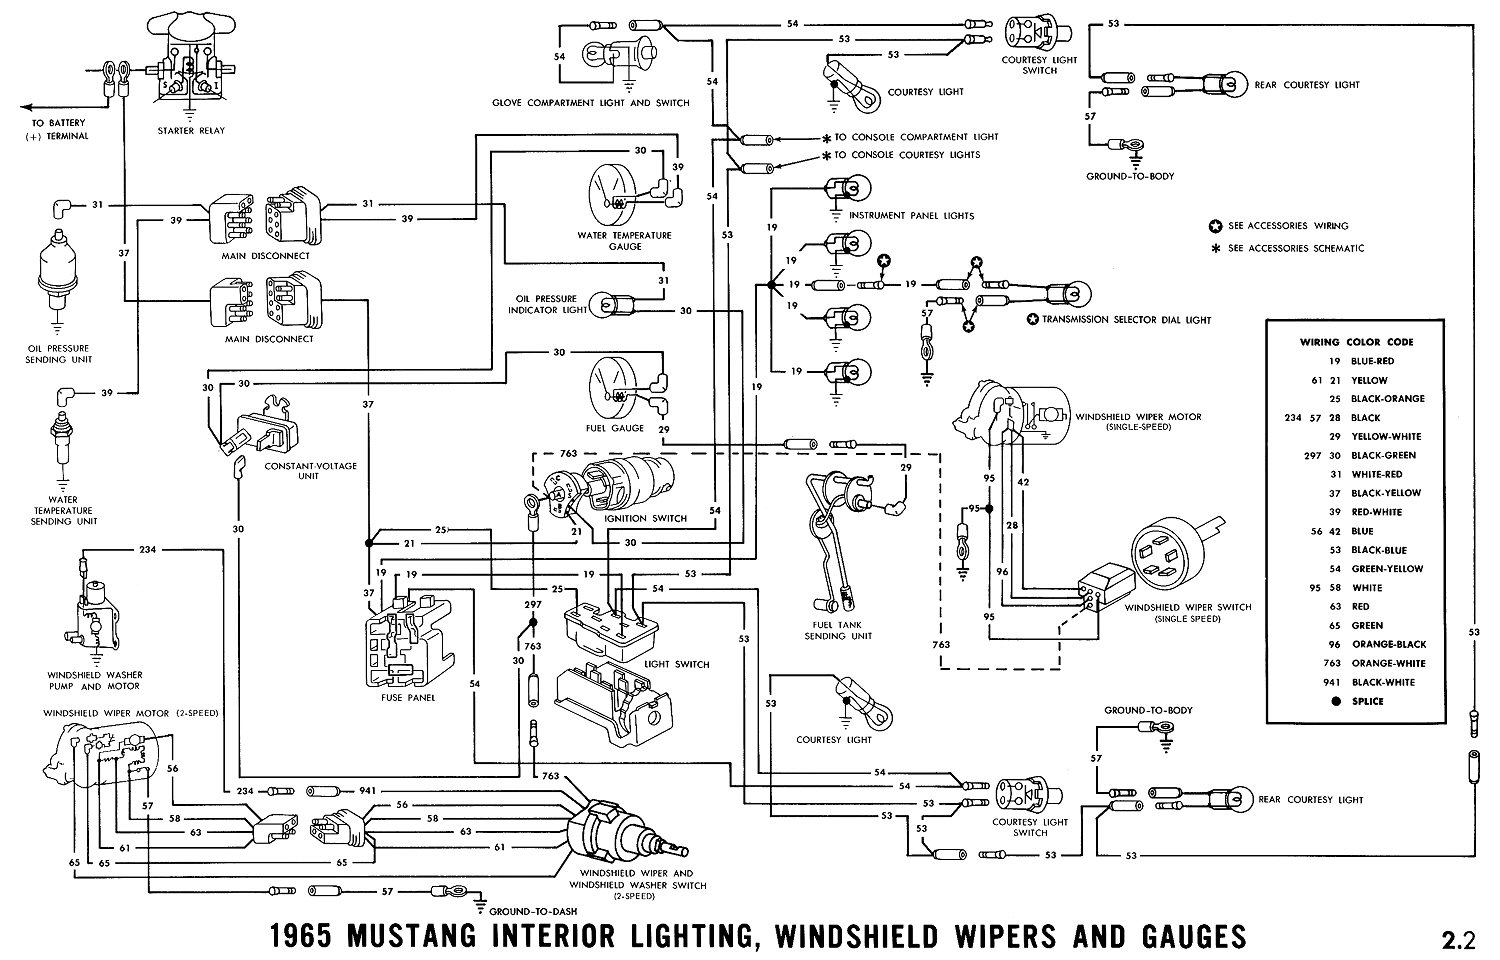 hight resolution of 1965 mustang wiring diagrams average joe restoration 1965 mustang electrical diagram 65 mustang wire diagram